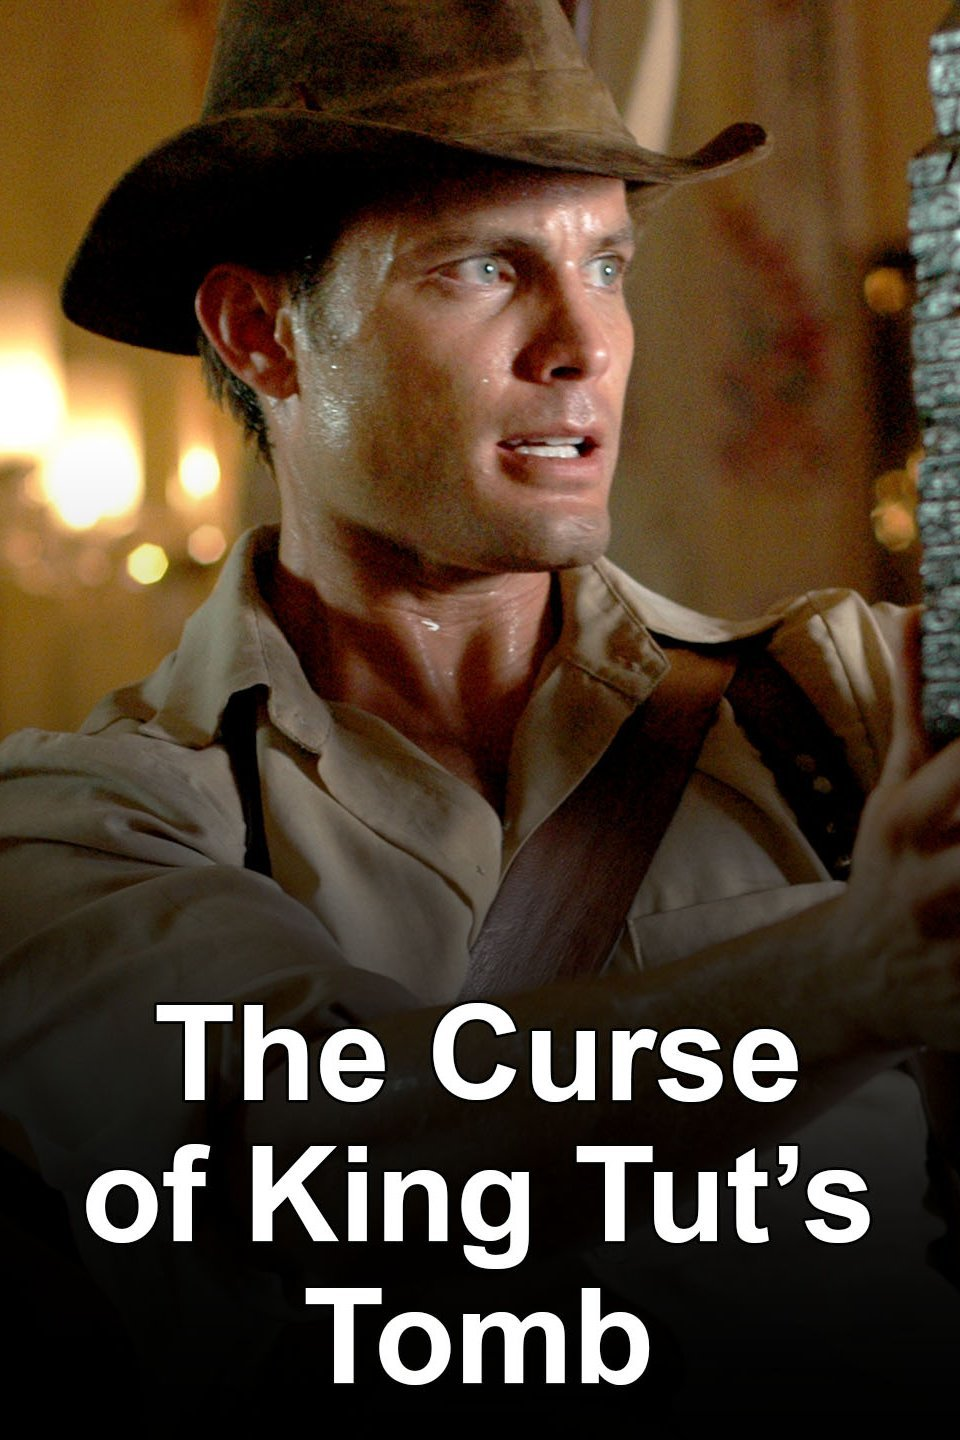 The Curse of King Tut's Tomb-The Curse of King Tut's Tomb